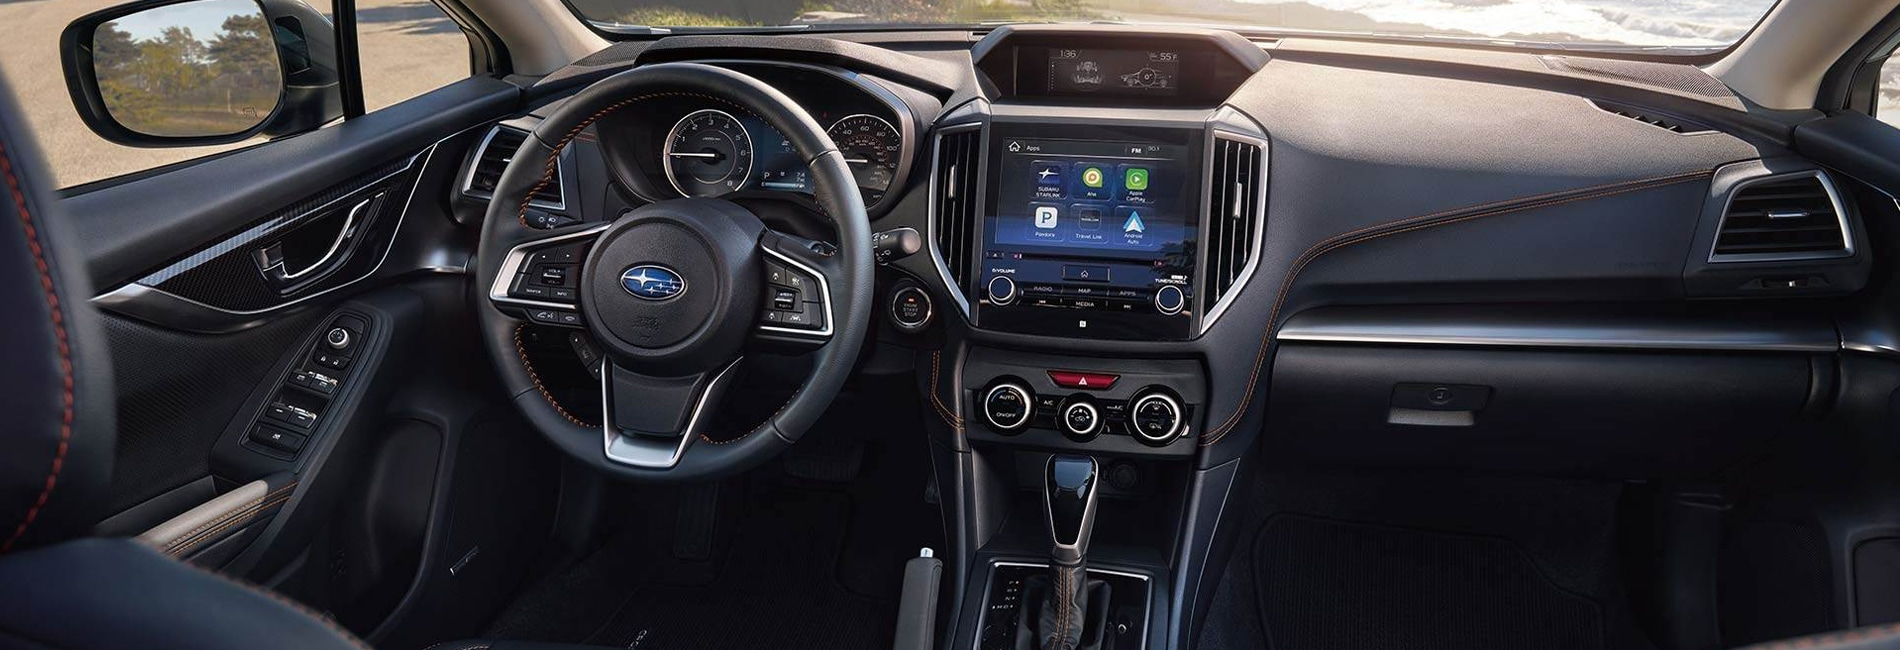 2019 Subaru Crosstrek Civic Interior Features